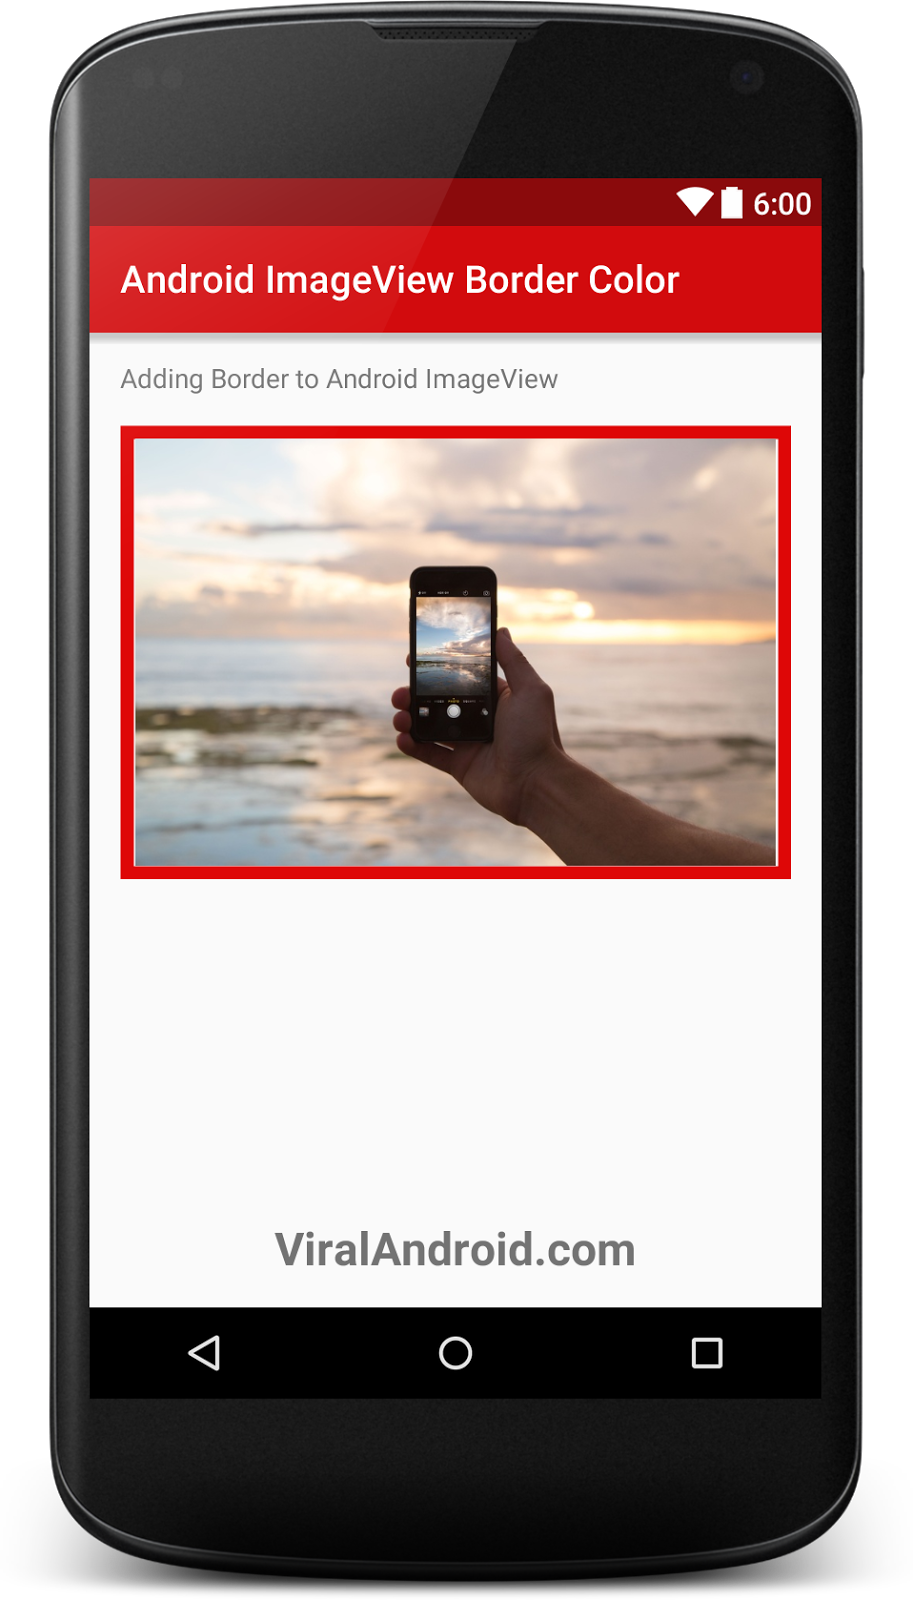 How to Add Border to Android ImageView